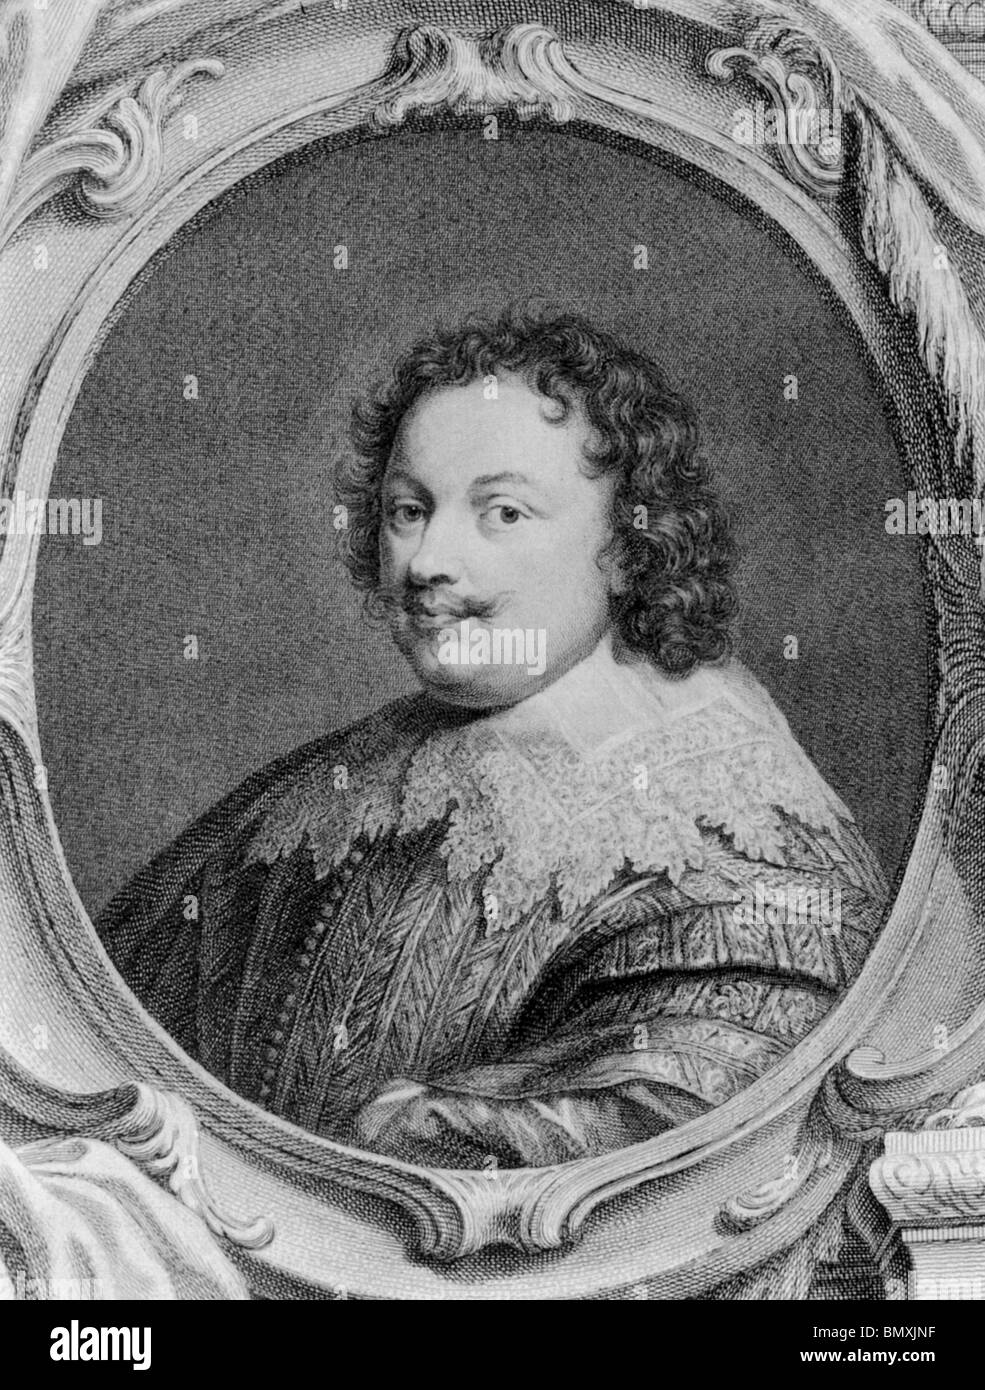 KENELM DIGBY (1603-1665) English courtier and diplomat - Stock Image